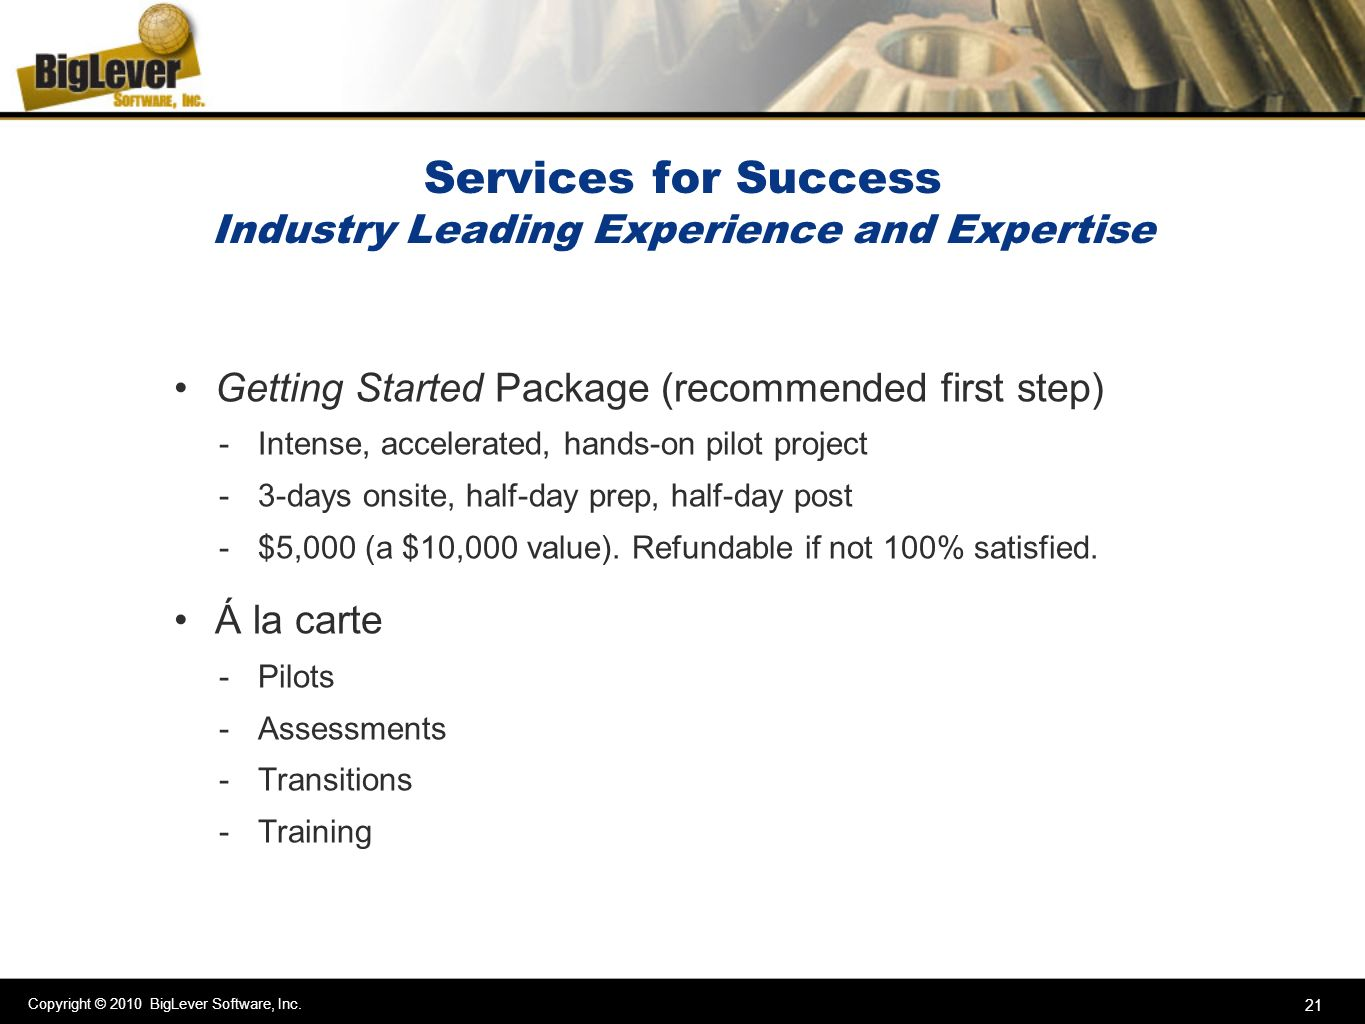 Services for Success Industry Leading Experience and Expertise